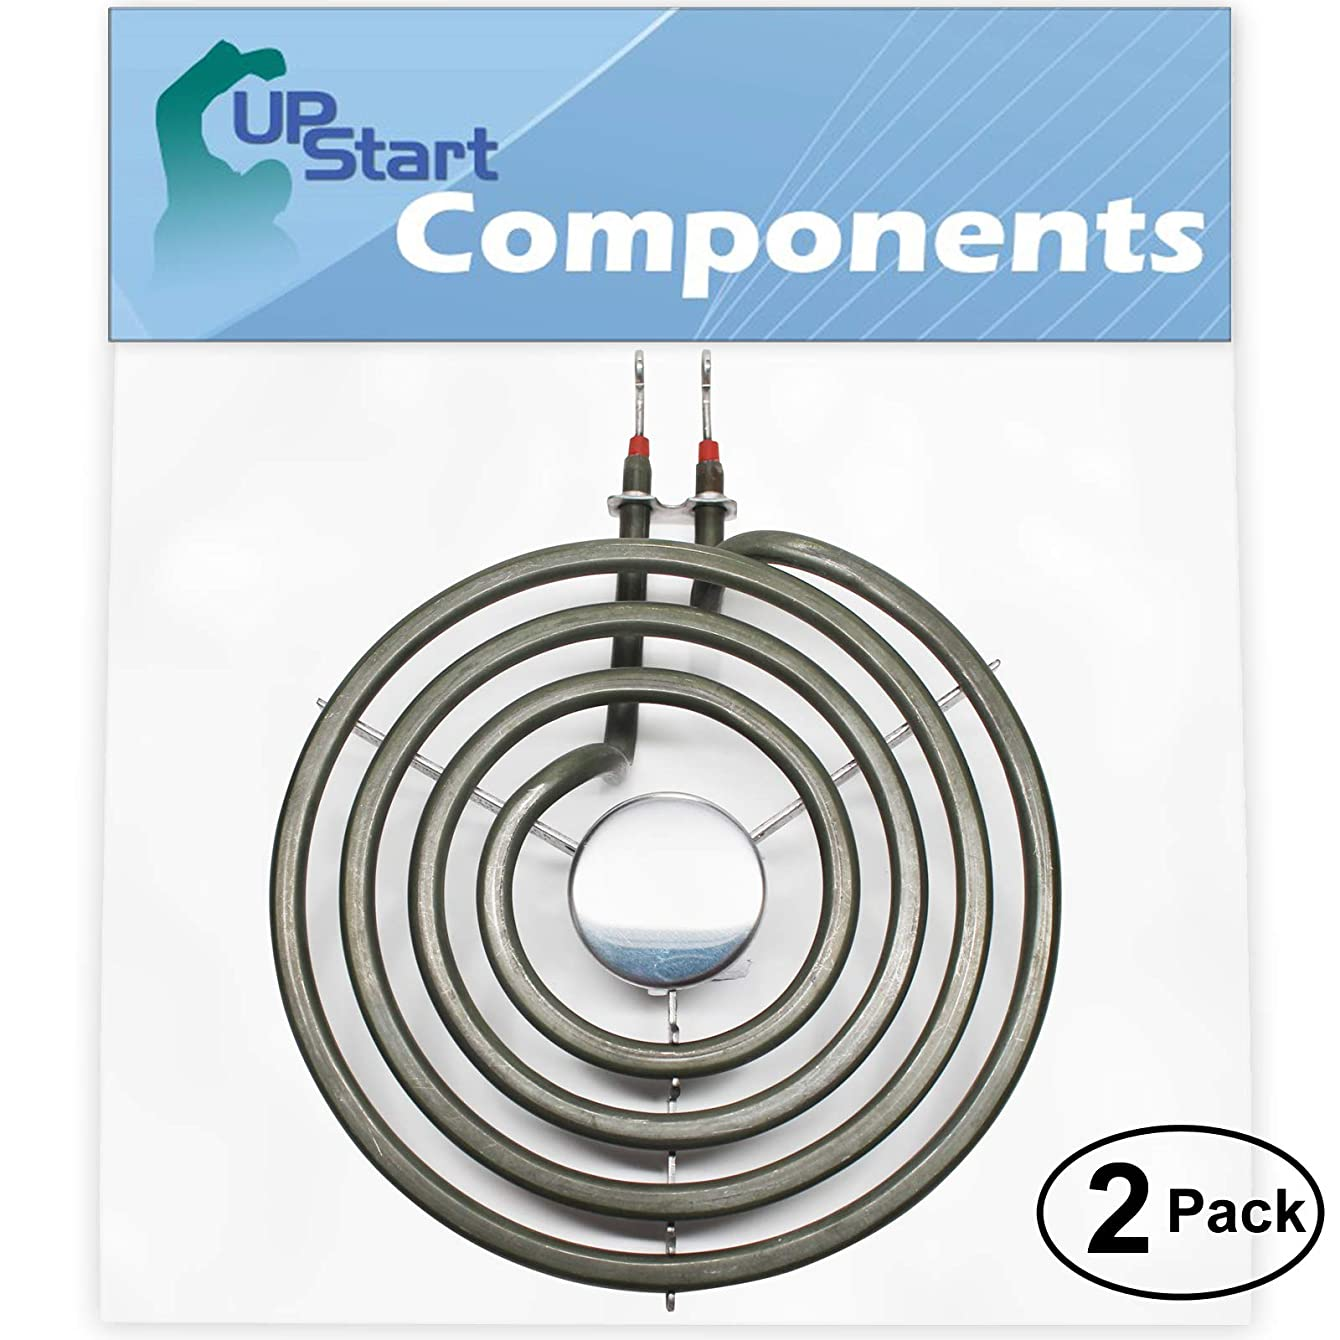 2-Pack Replacement Magic Chef S68HK-3CXW 6 inch 4 Turns Surface Burner Element - Compatible Magic Chef 660532 Heating Element for Range, Stove & Cooktop